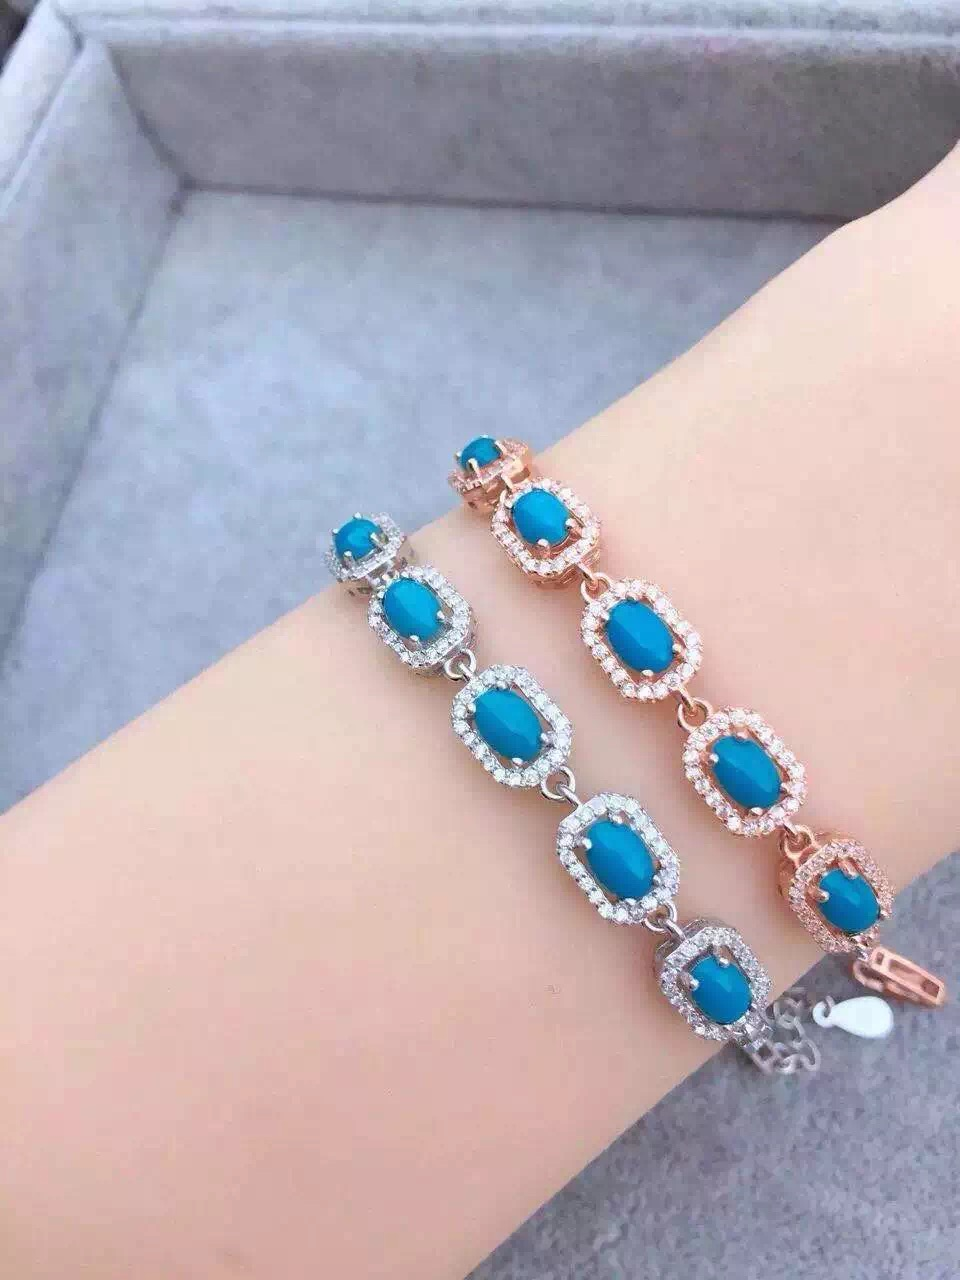 Fashion Simple Square natural green turquoise bracelets 925 sterling silver natural gem stone bracelet women party fine jewelry<br><br>Aliexpress